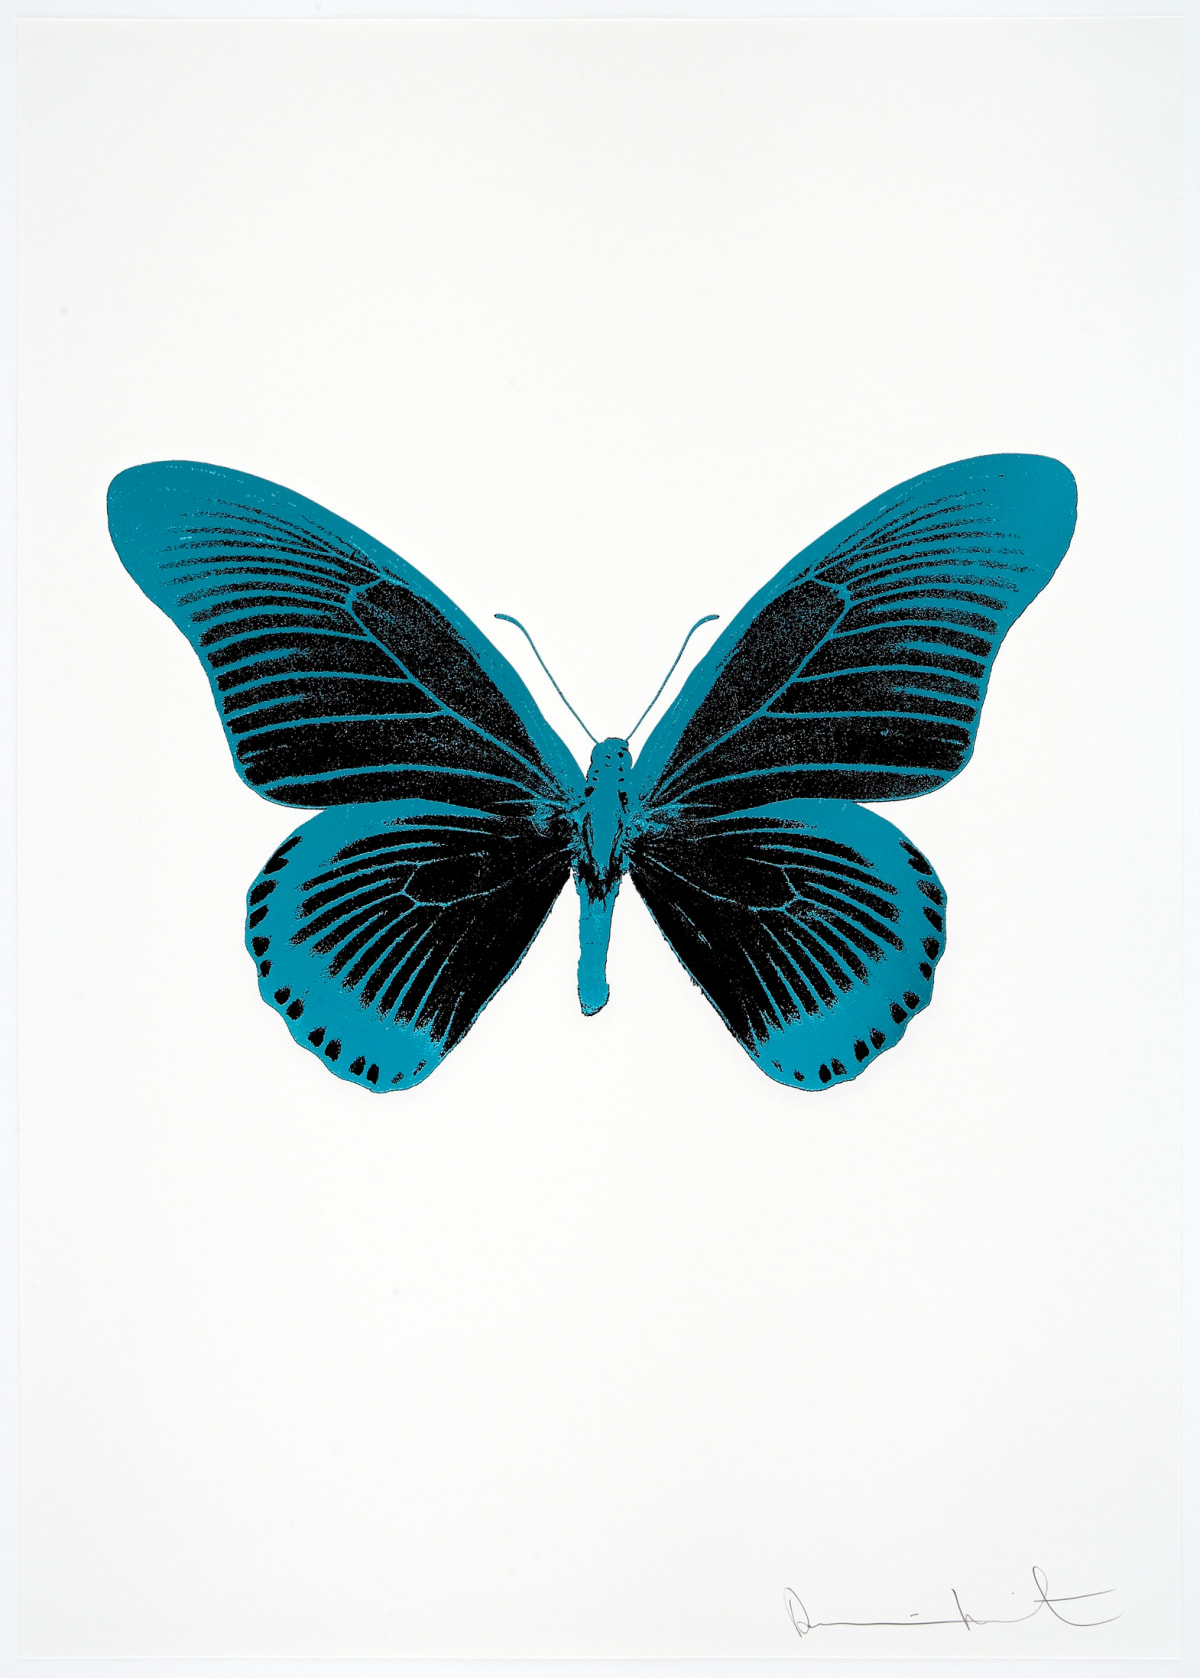 Damien Hirst The Souls IV - Raven Black/Topaz/Topaz Damien Hirst butterfly foil print for sale Damien Hirst print for sale , 2010 3 colour foil block on 300gsm Arches 88 archival paper. Signed and numbered. Published by Paul Stolper and Other Criteria 72 x 51cm OC8017 / 1418-40 Edition of 15